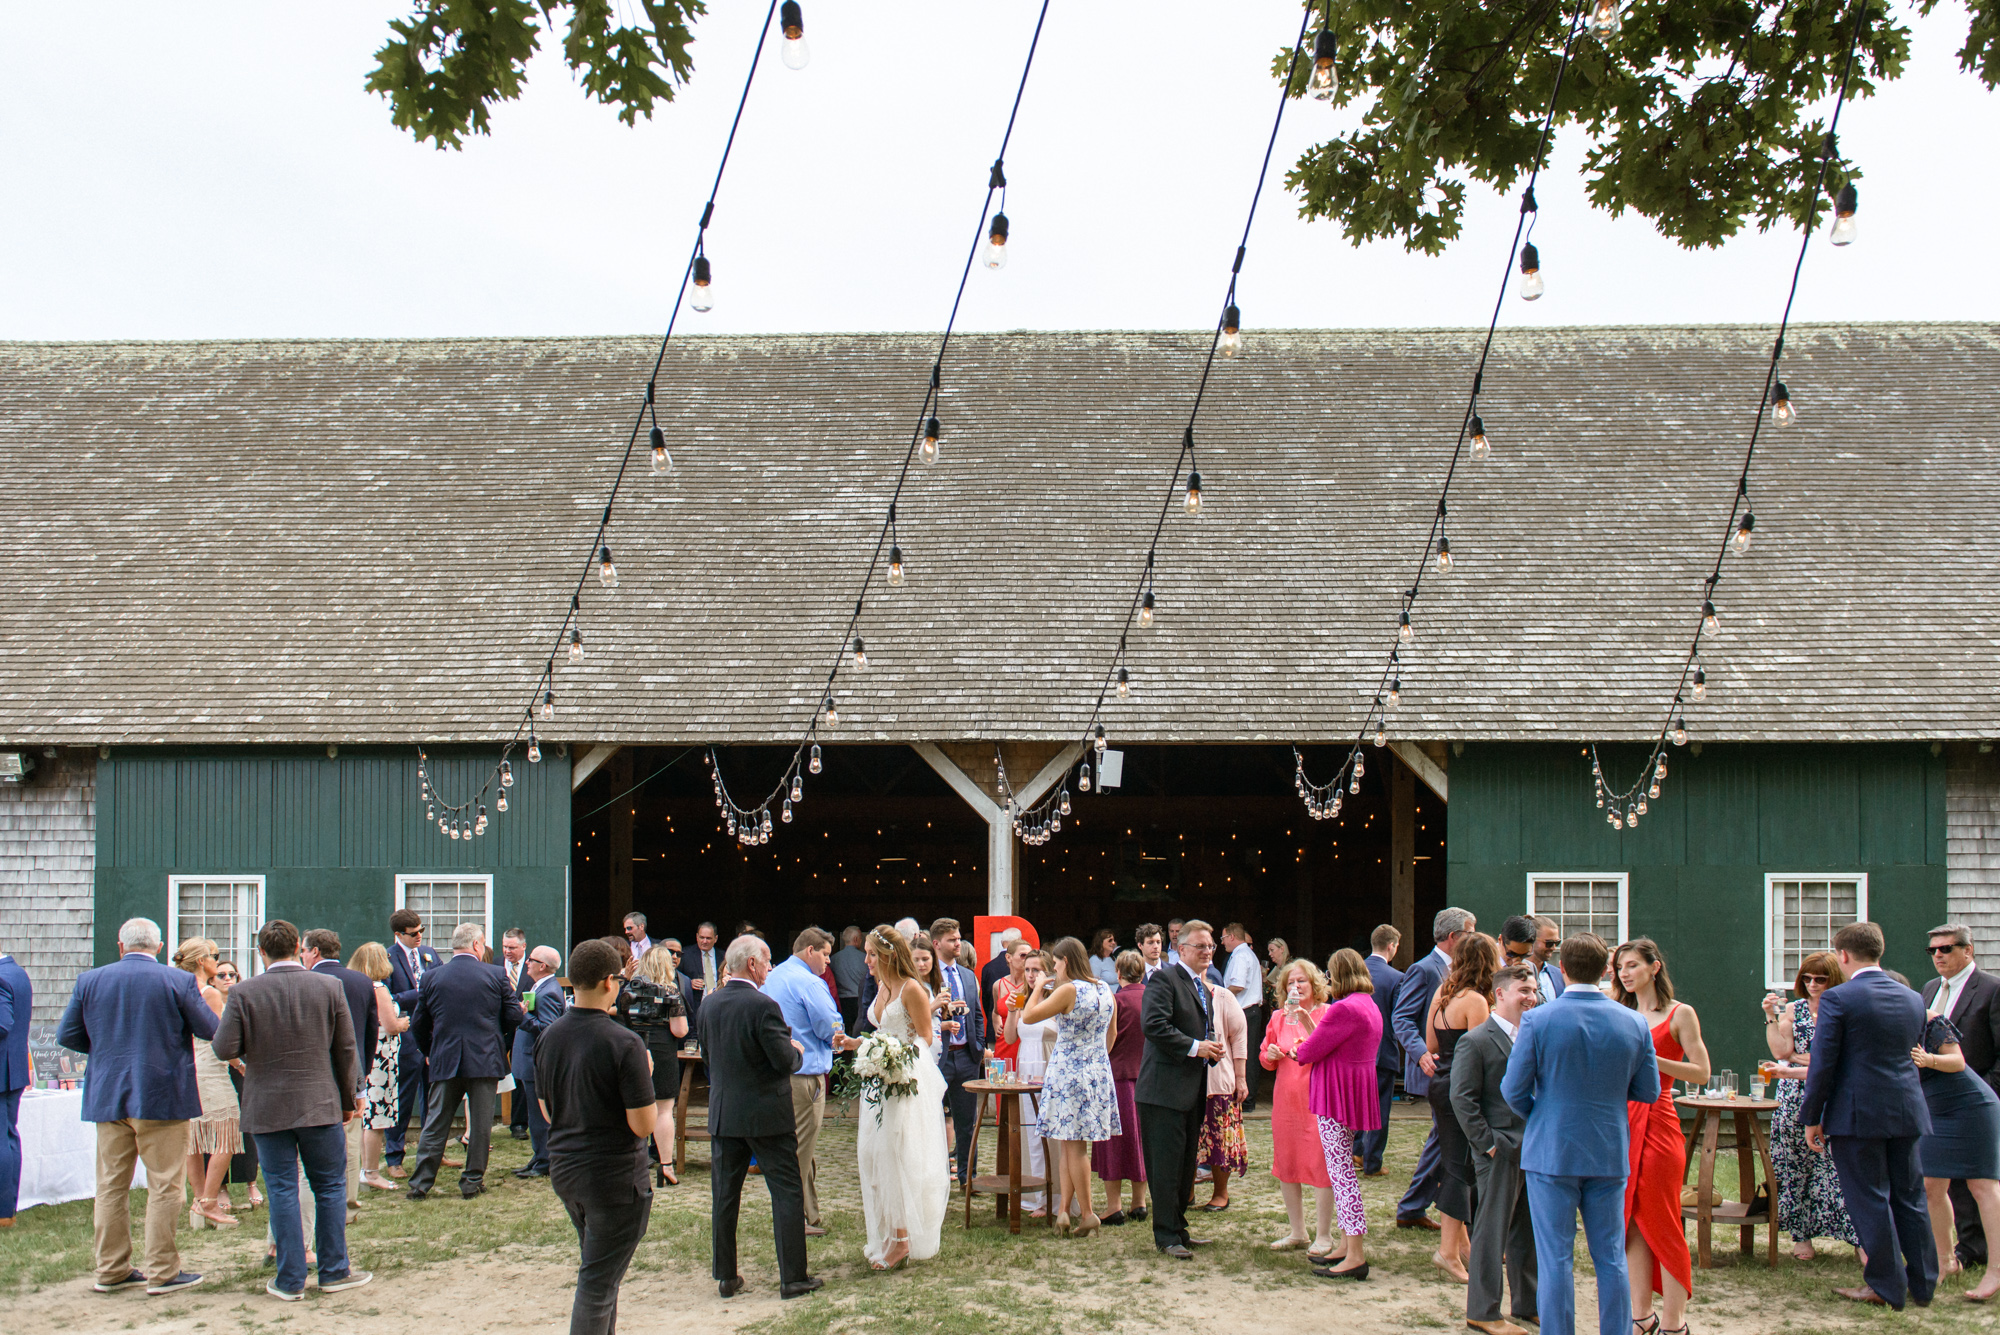 A wedding cocktail hour at the Martha's Vineyard Agricultural Hall in West Tisbury photo by David Welch Photography